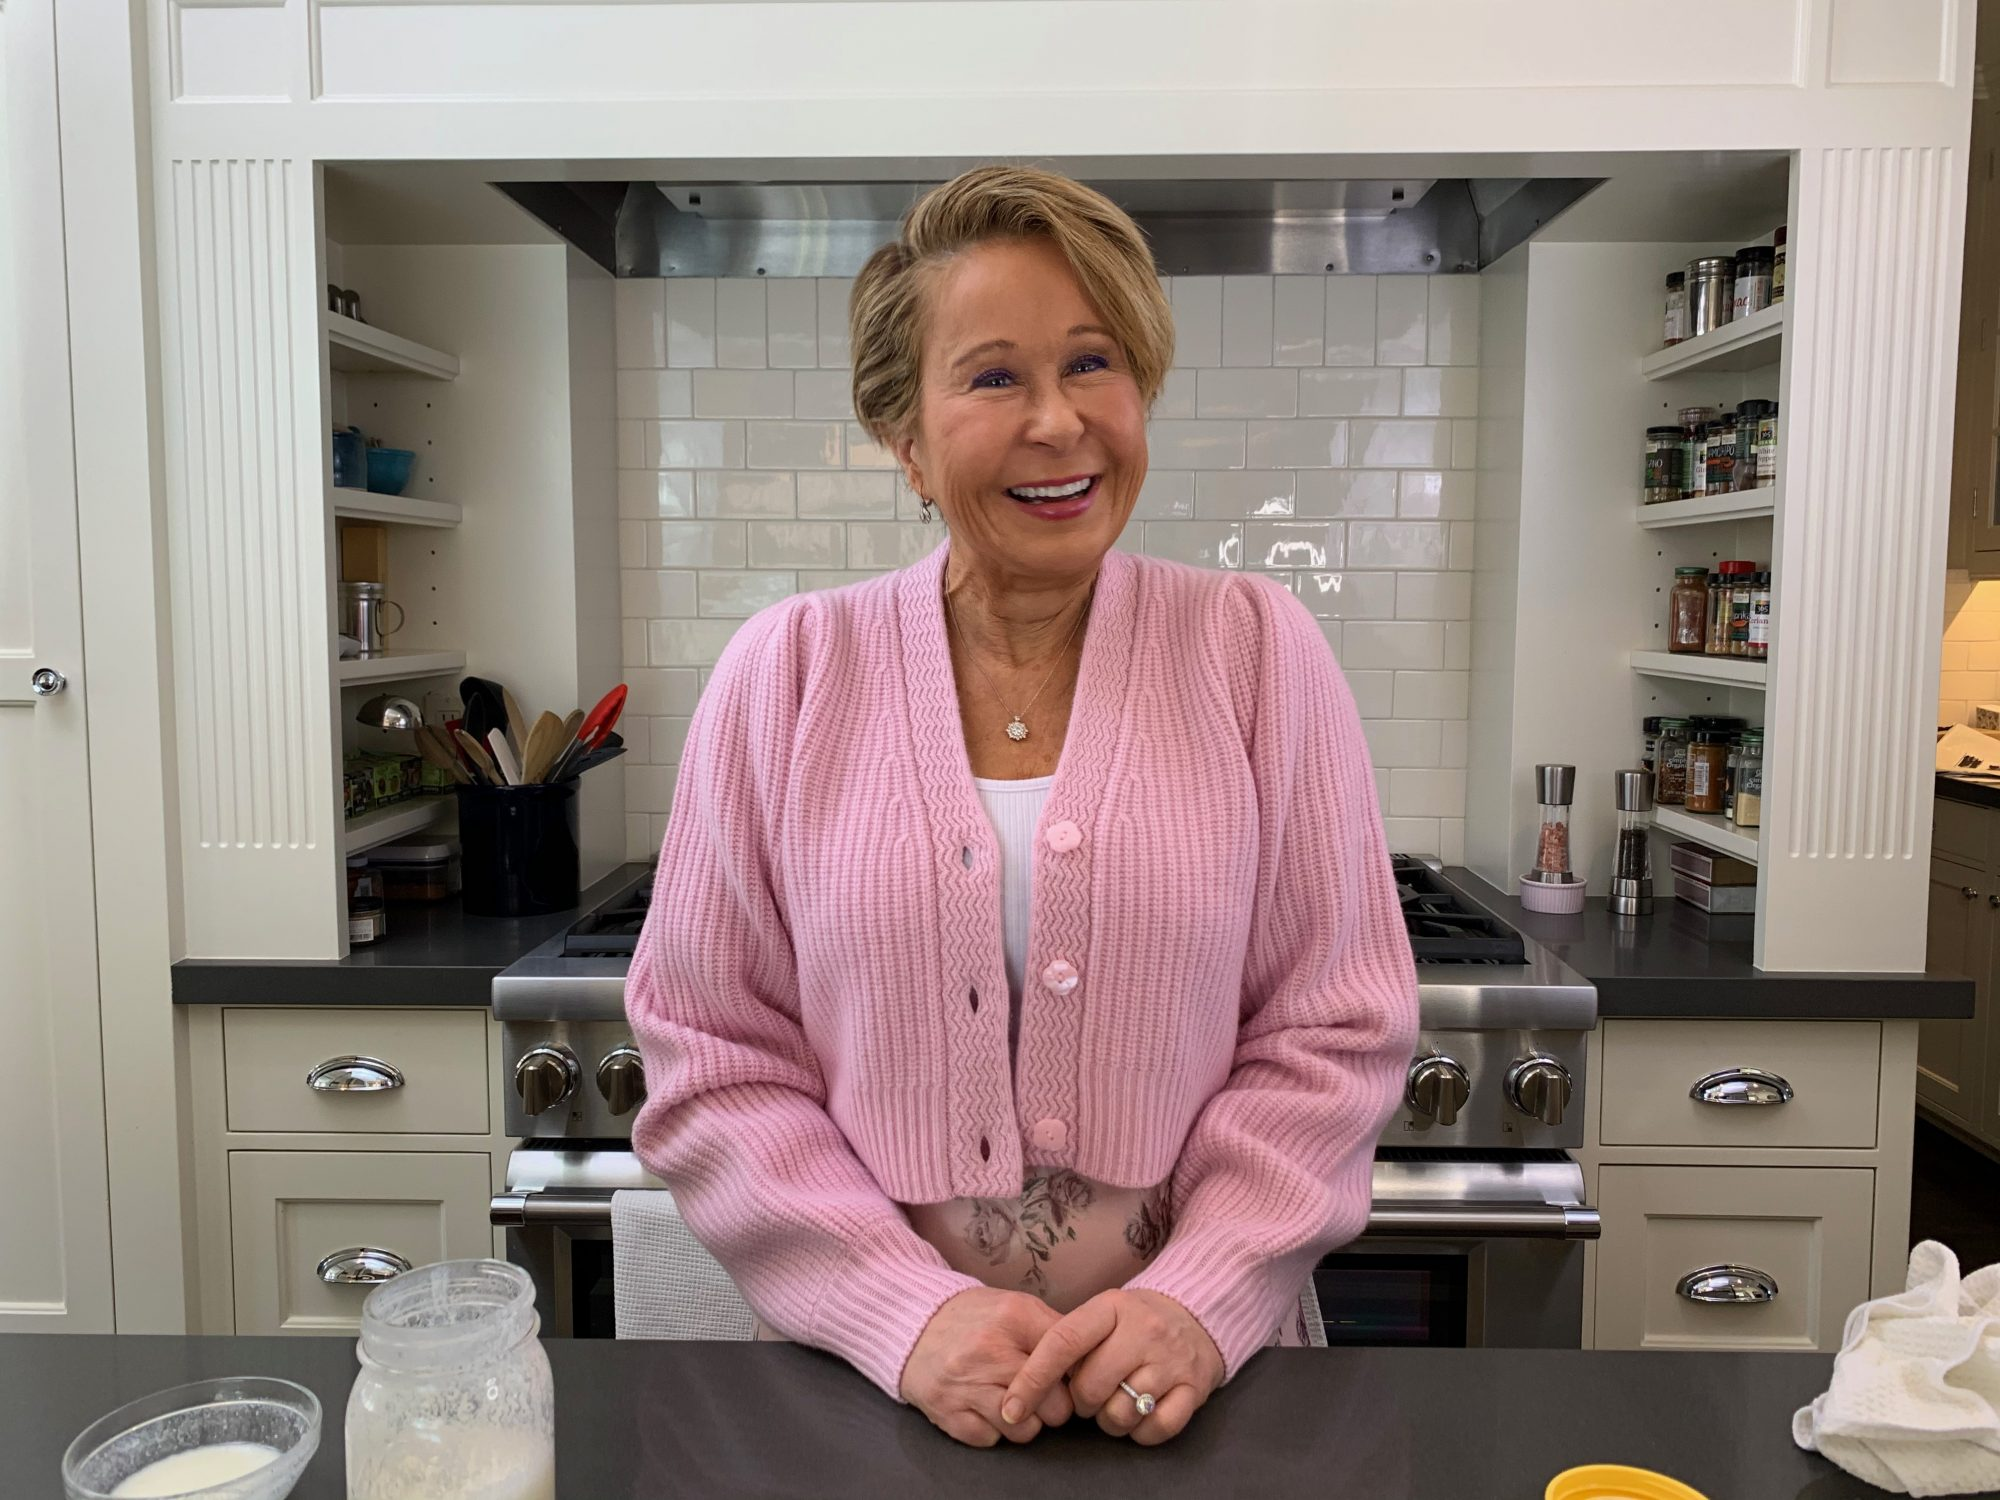 Yeardley Smith in the kitchen